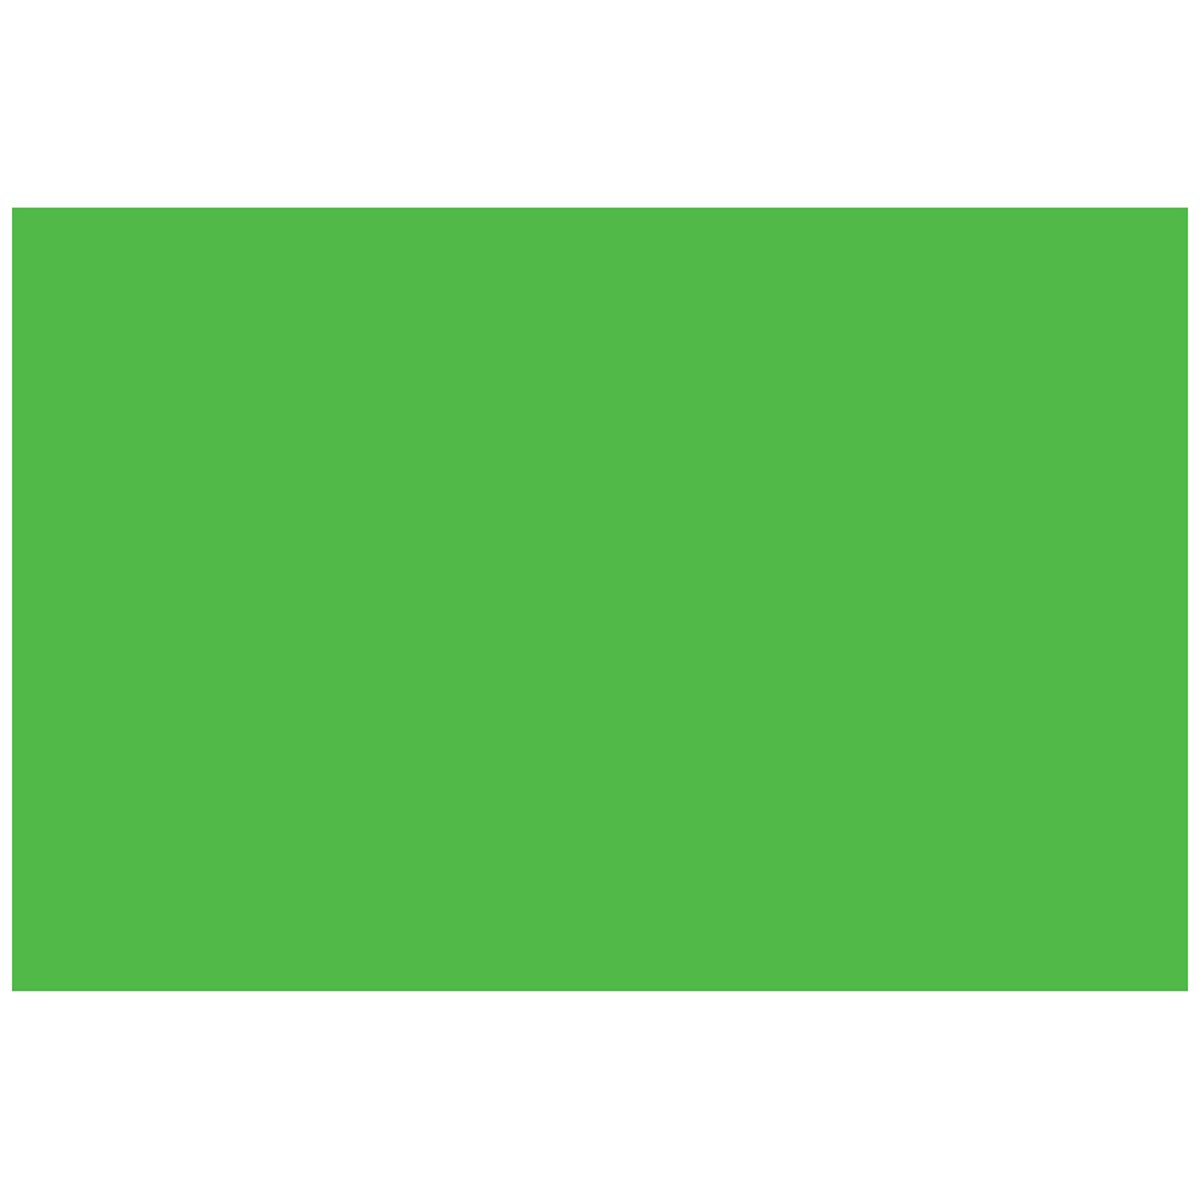 PDC Healthcare CS-G Label Compatible with CS-2 Guns Paper, Permanent, 1'' Core, 15/16'' x 5/8'', Green (Pack of 24000)